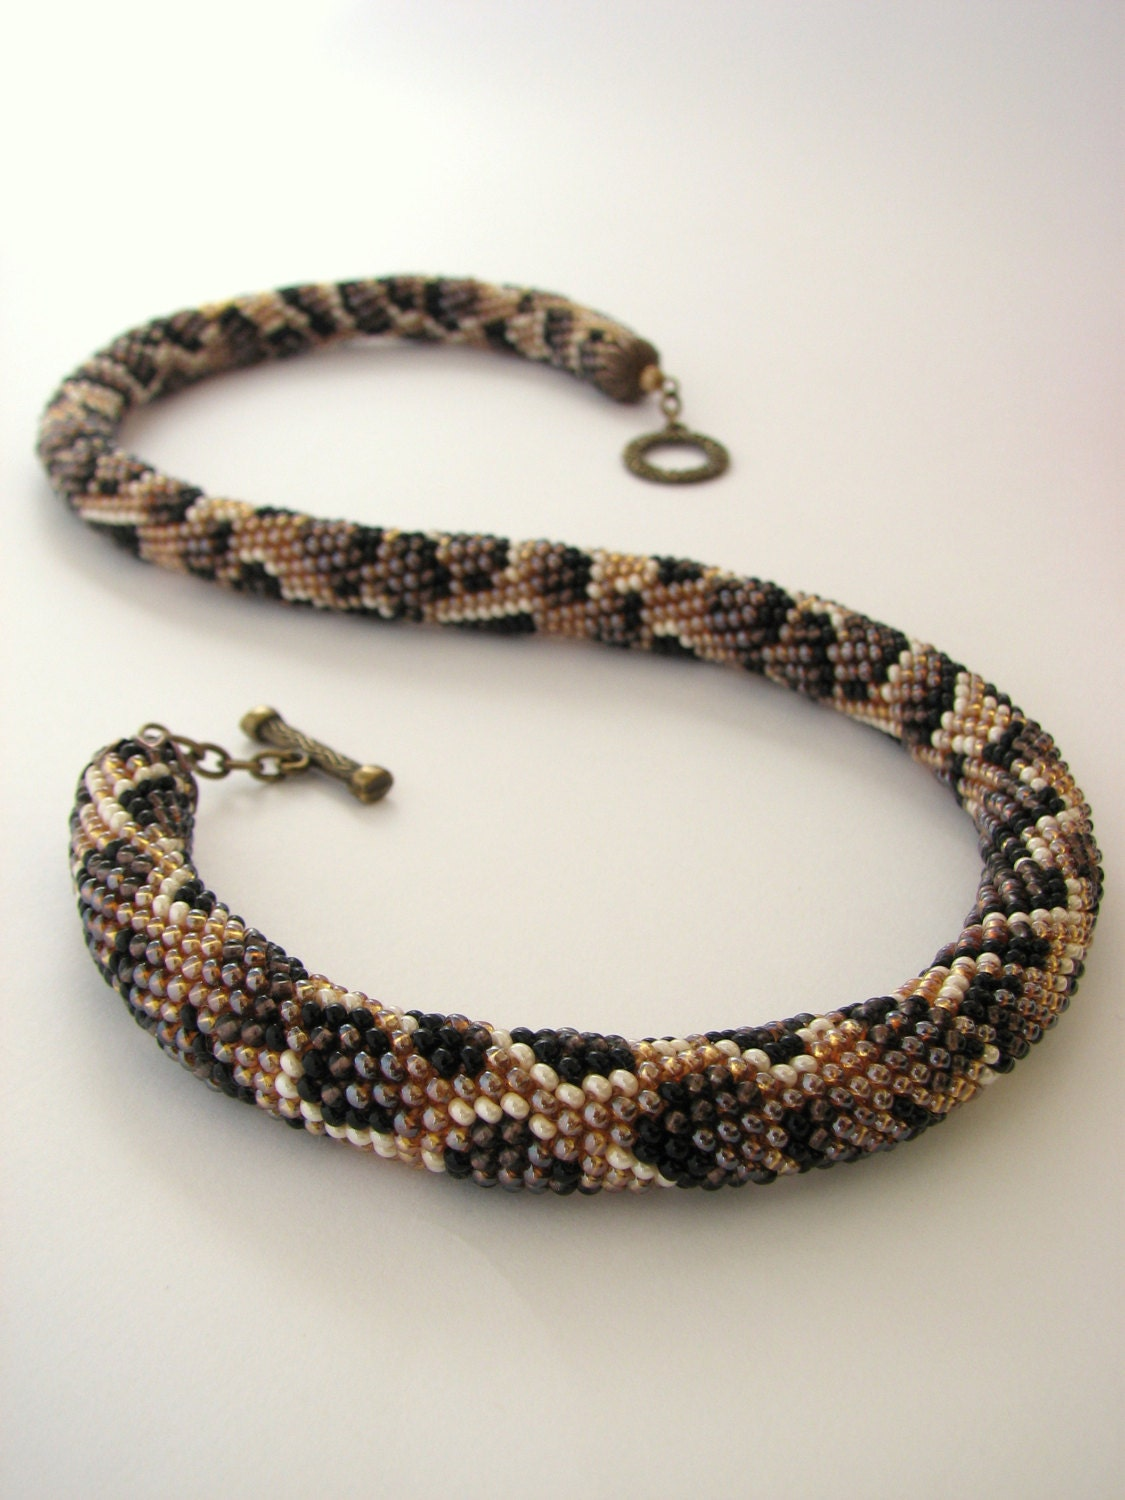 Rope necklace leopard pattern snake bead embroidery